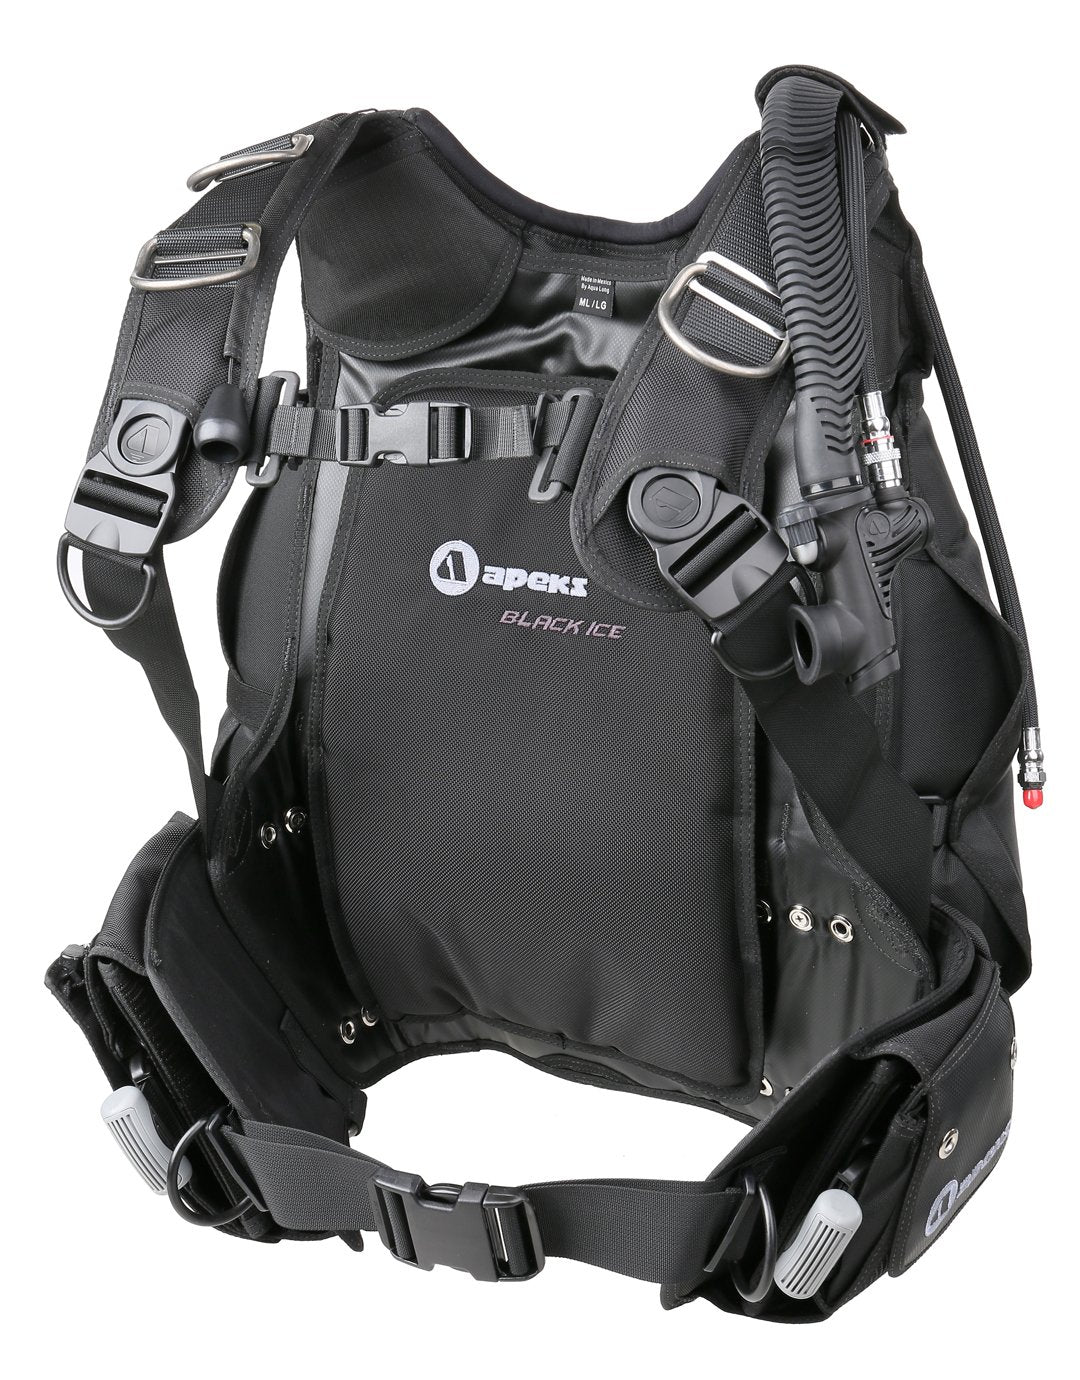 Image of Apeks Black Ice BCD